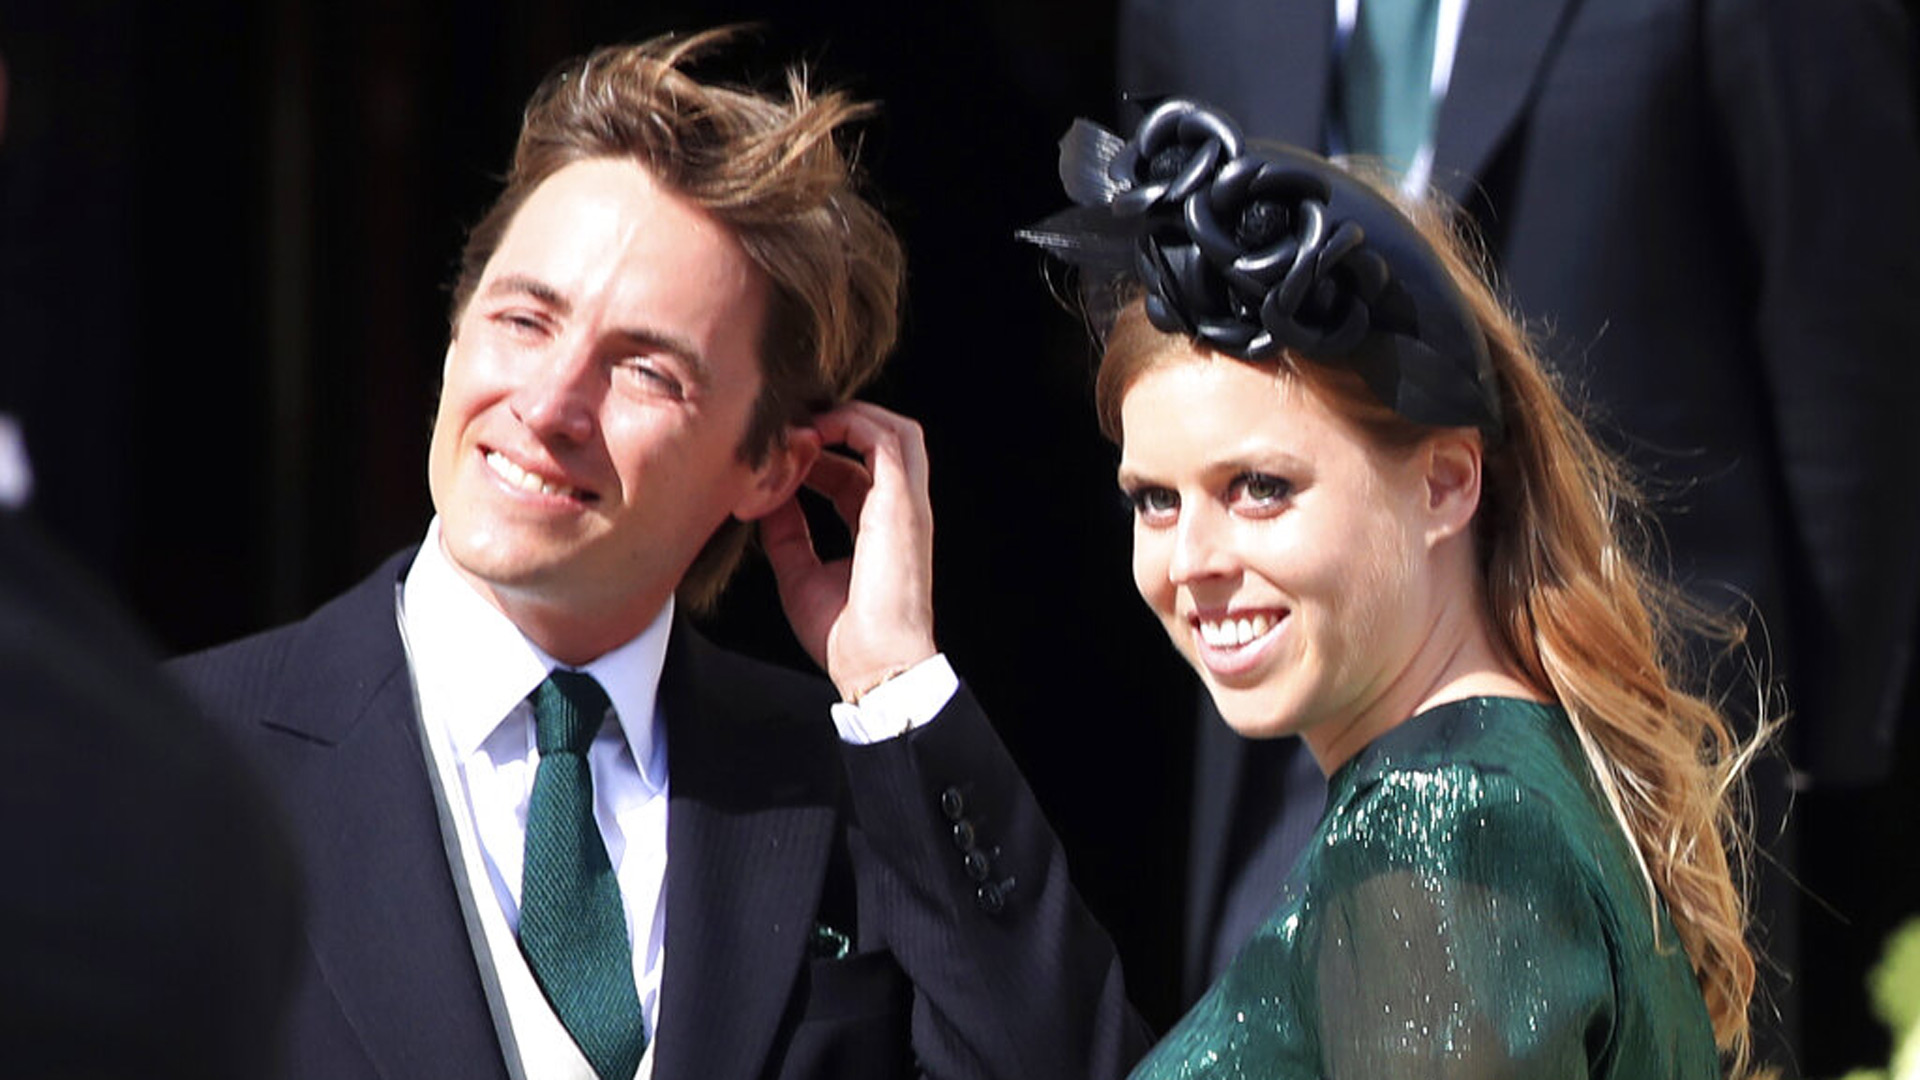 Princess Beatrice gives birth to daughter in London